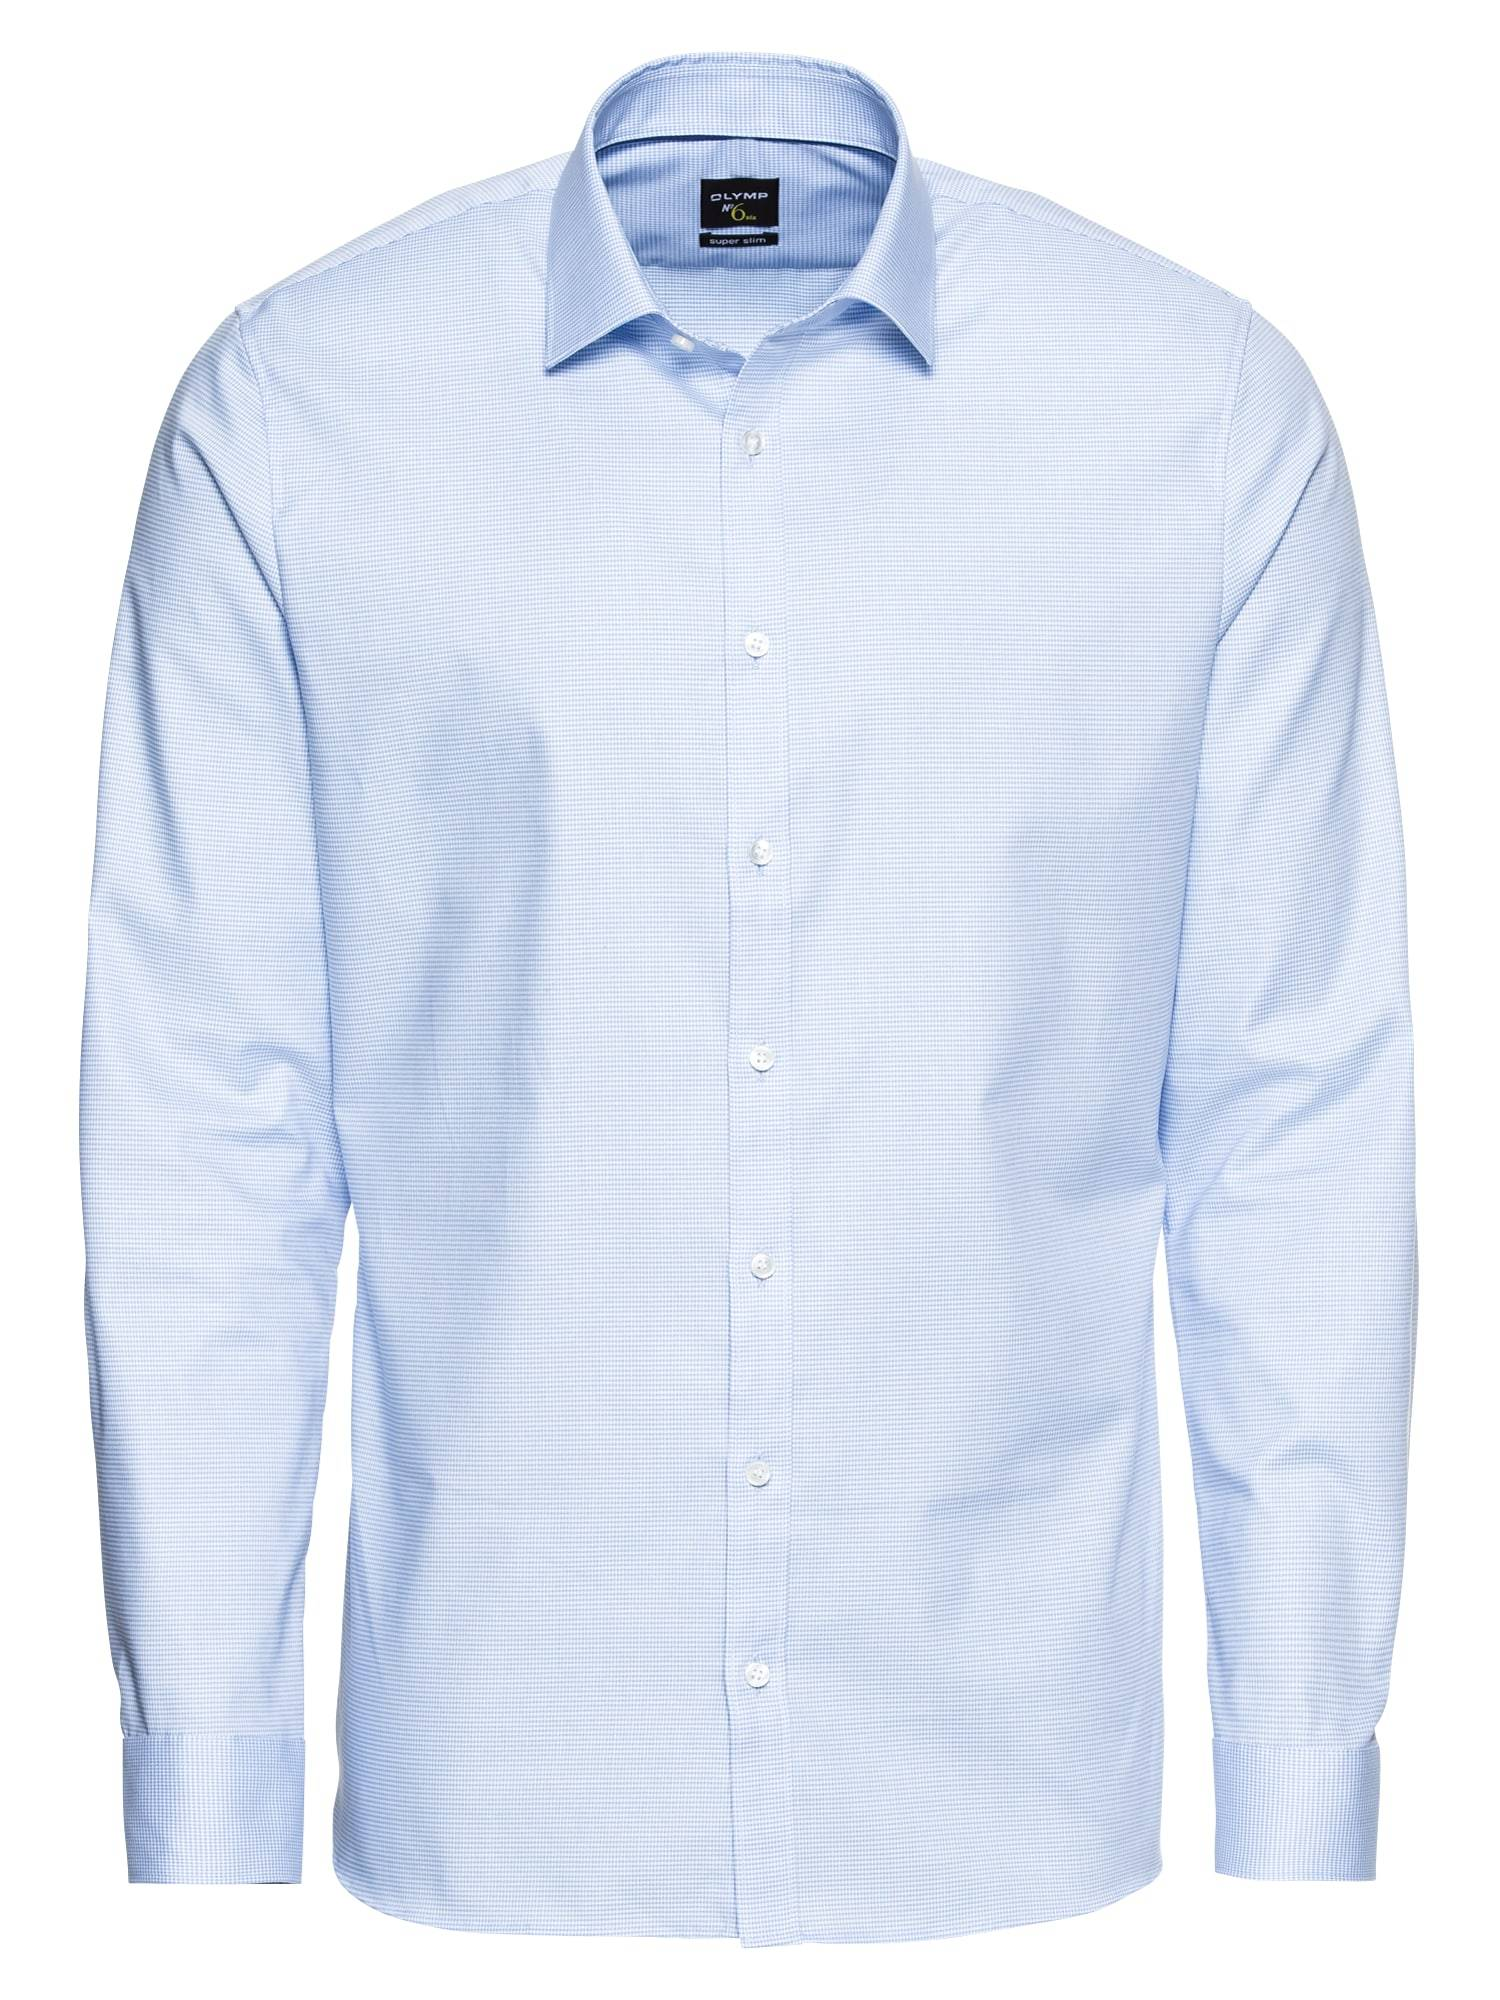 OLYMP Chemise business 'No. 6 Faux Uni'  - Bleu - Taille: 41 - male